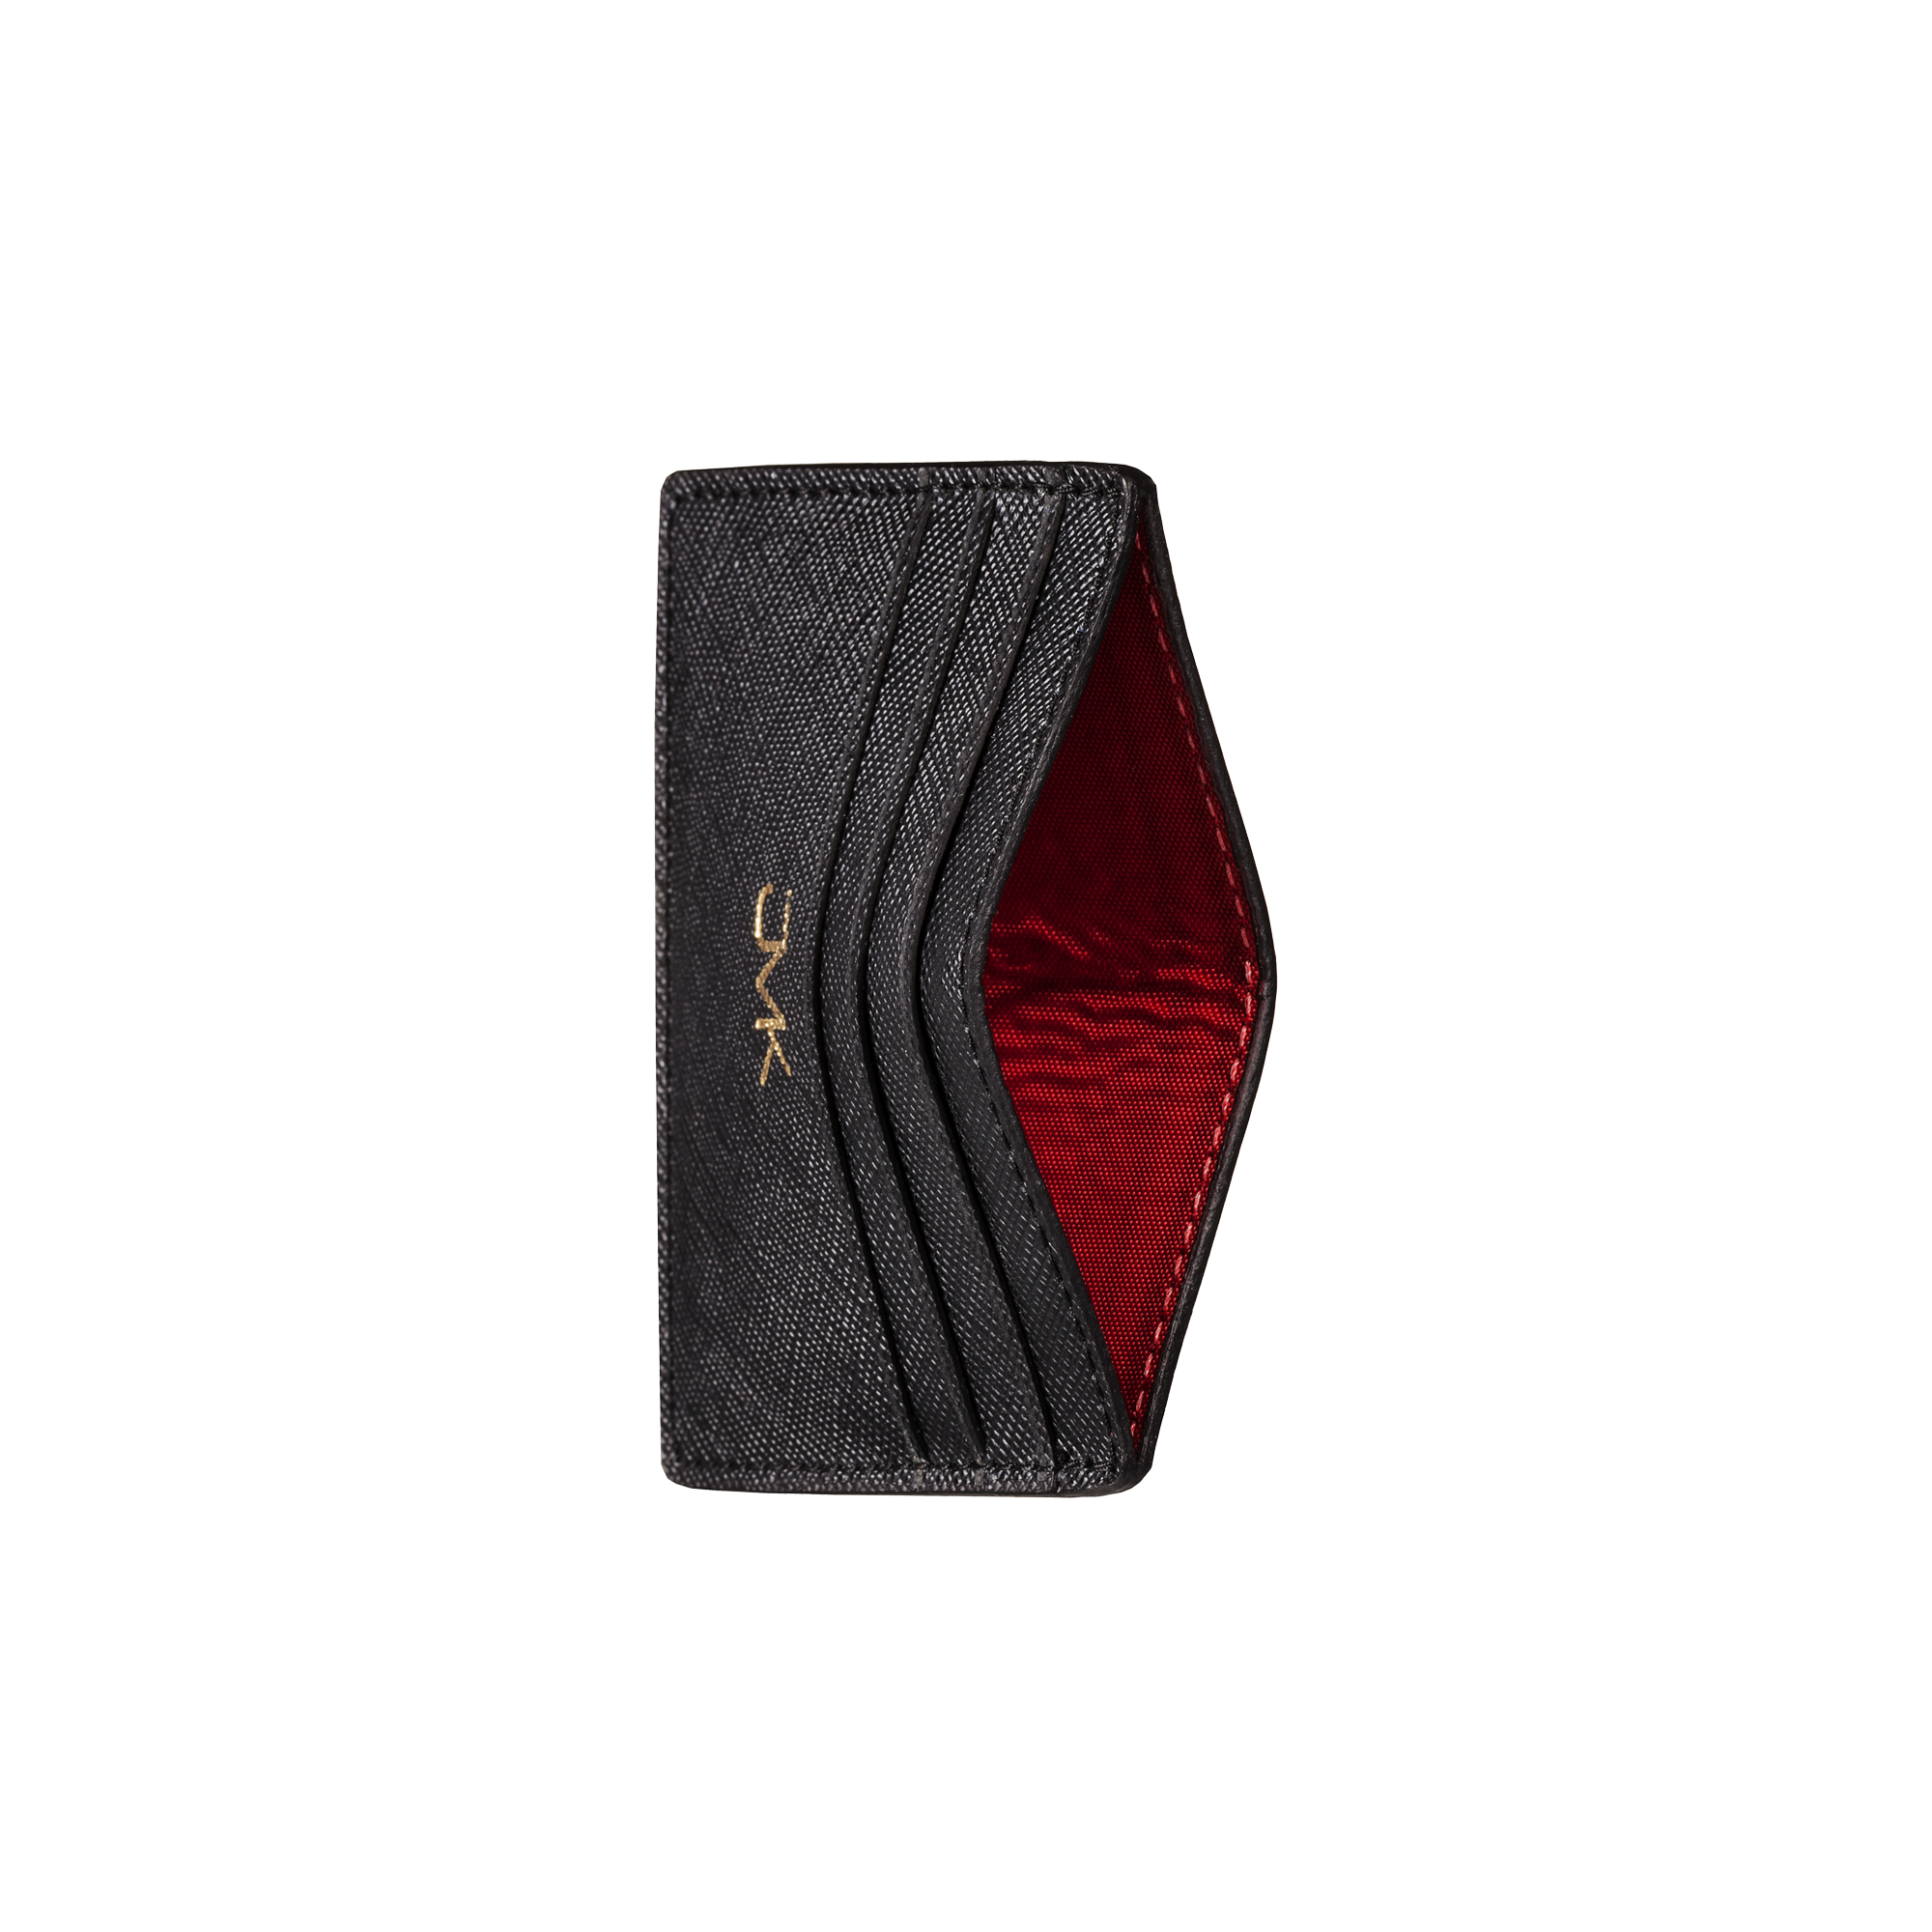 Card Holder - 6 Slots, Saffiano Leather Black/Red, MAISON JMK-VONMEL Luxe Gifts